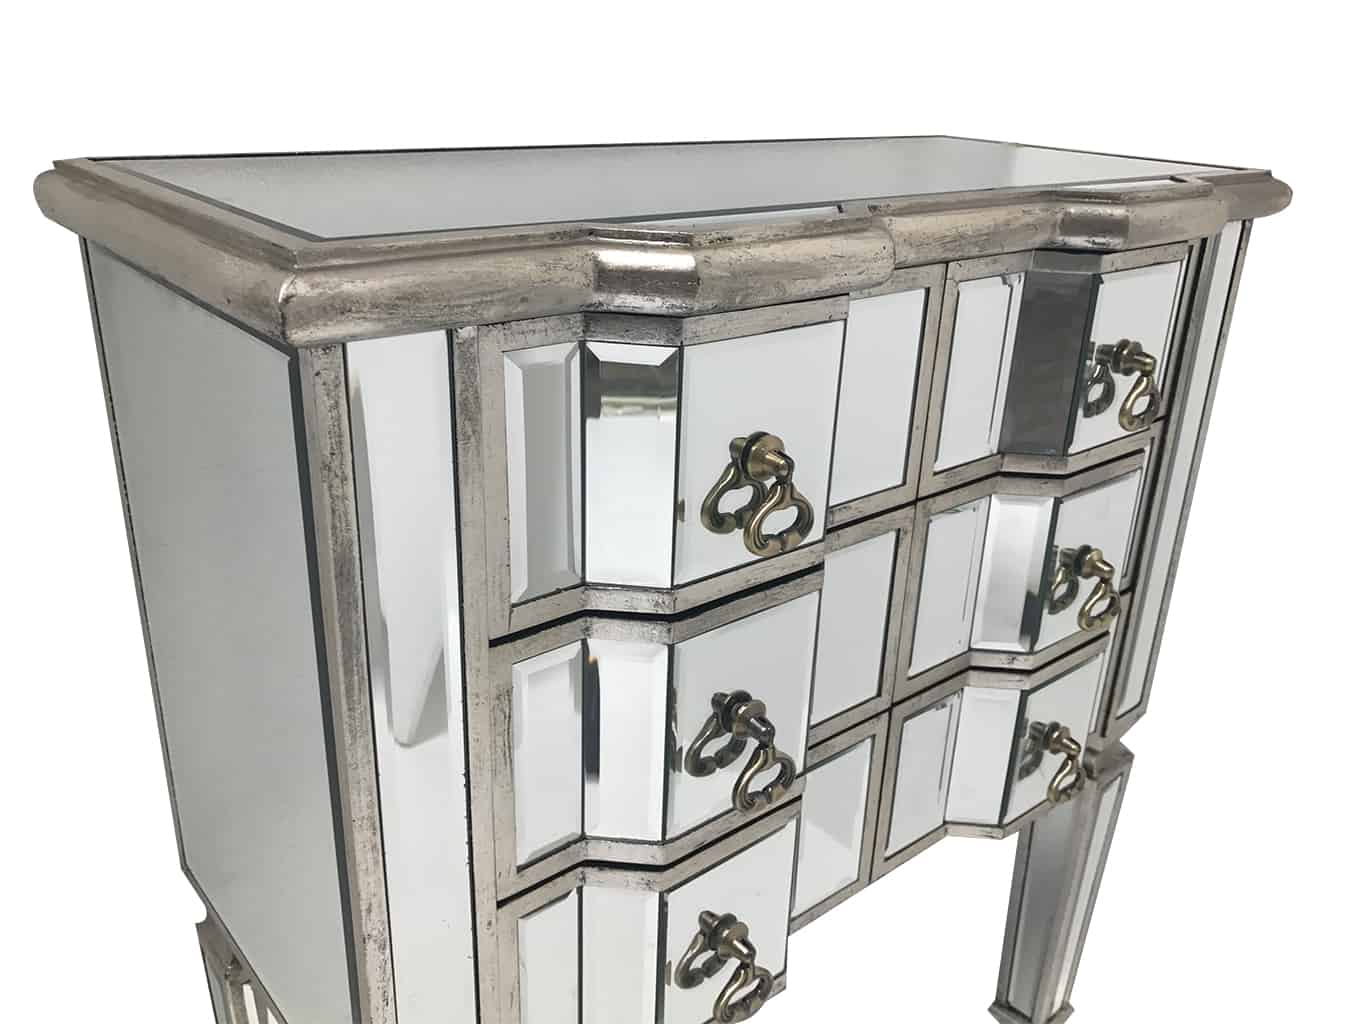 Mirrored Drawers in antiqued silver finish